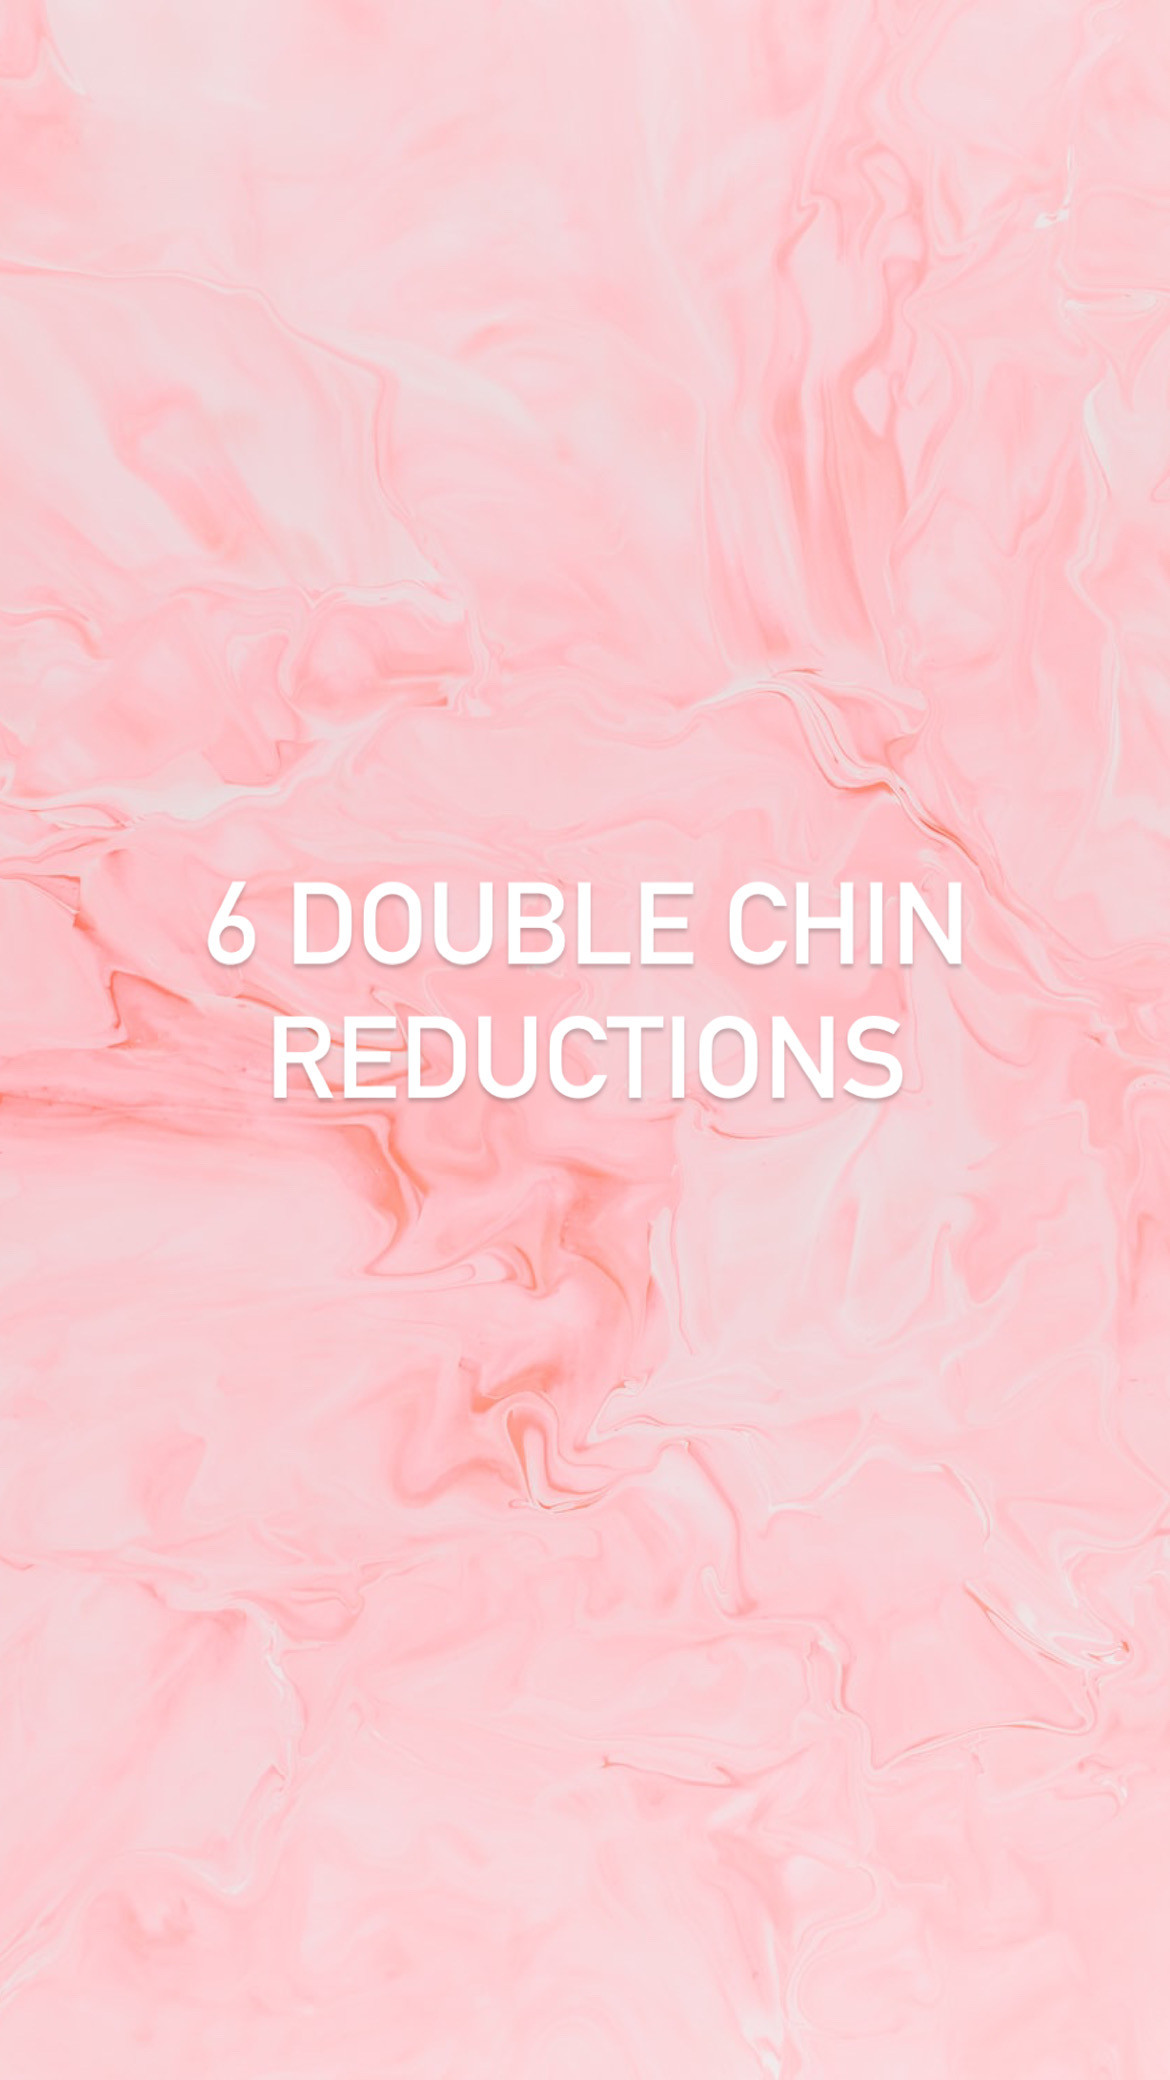 6 Double Chin Reductions